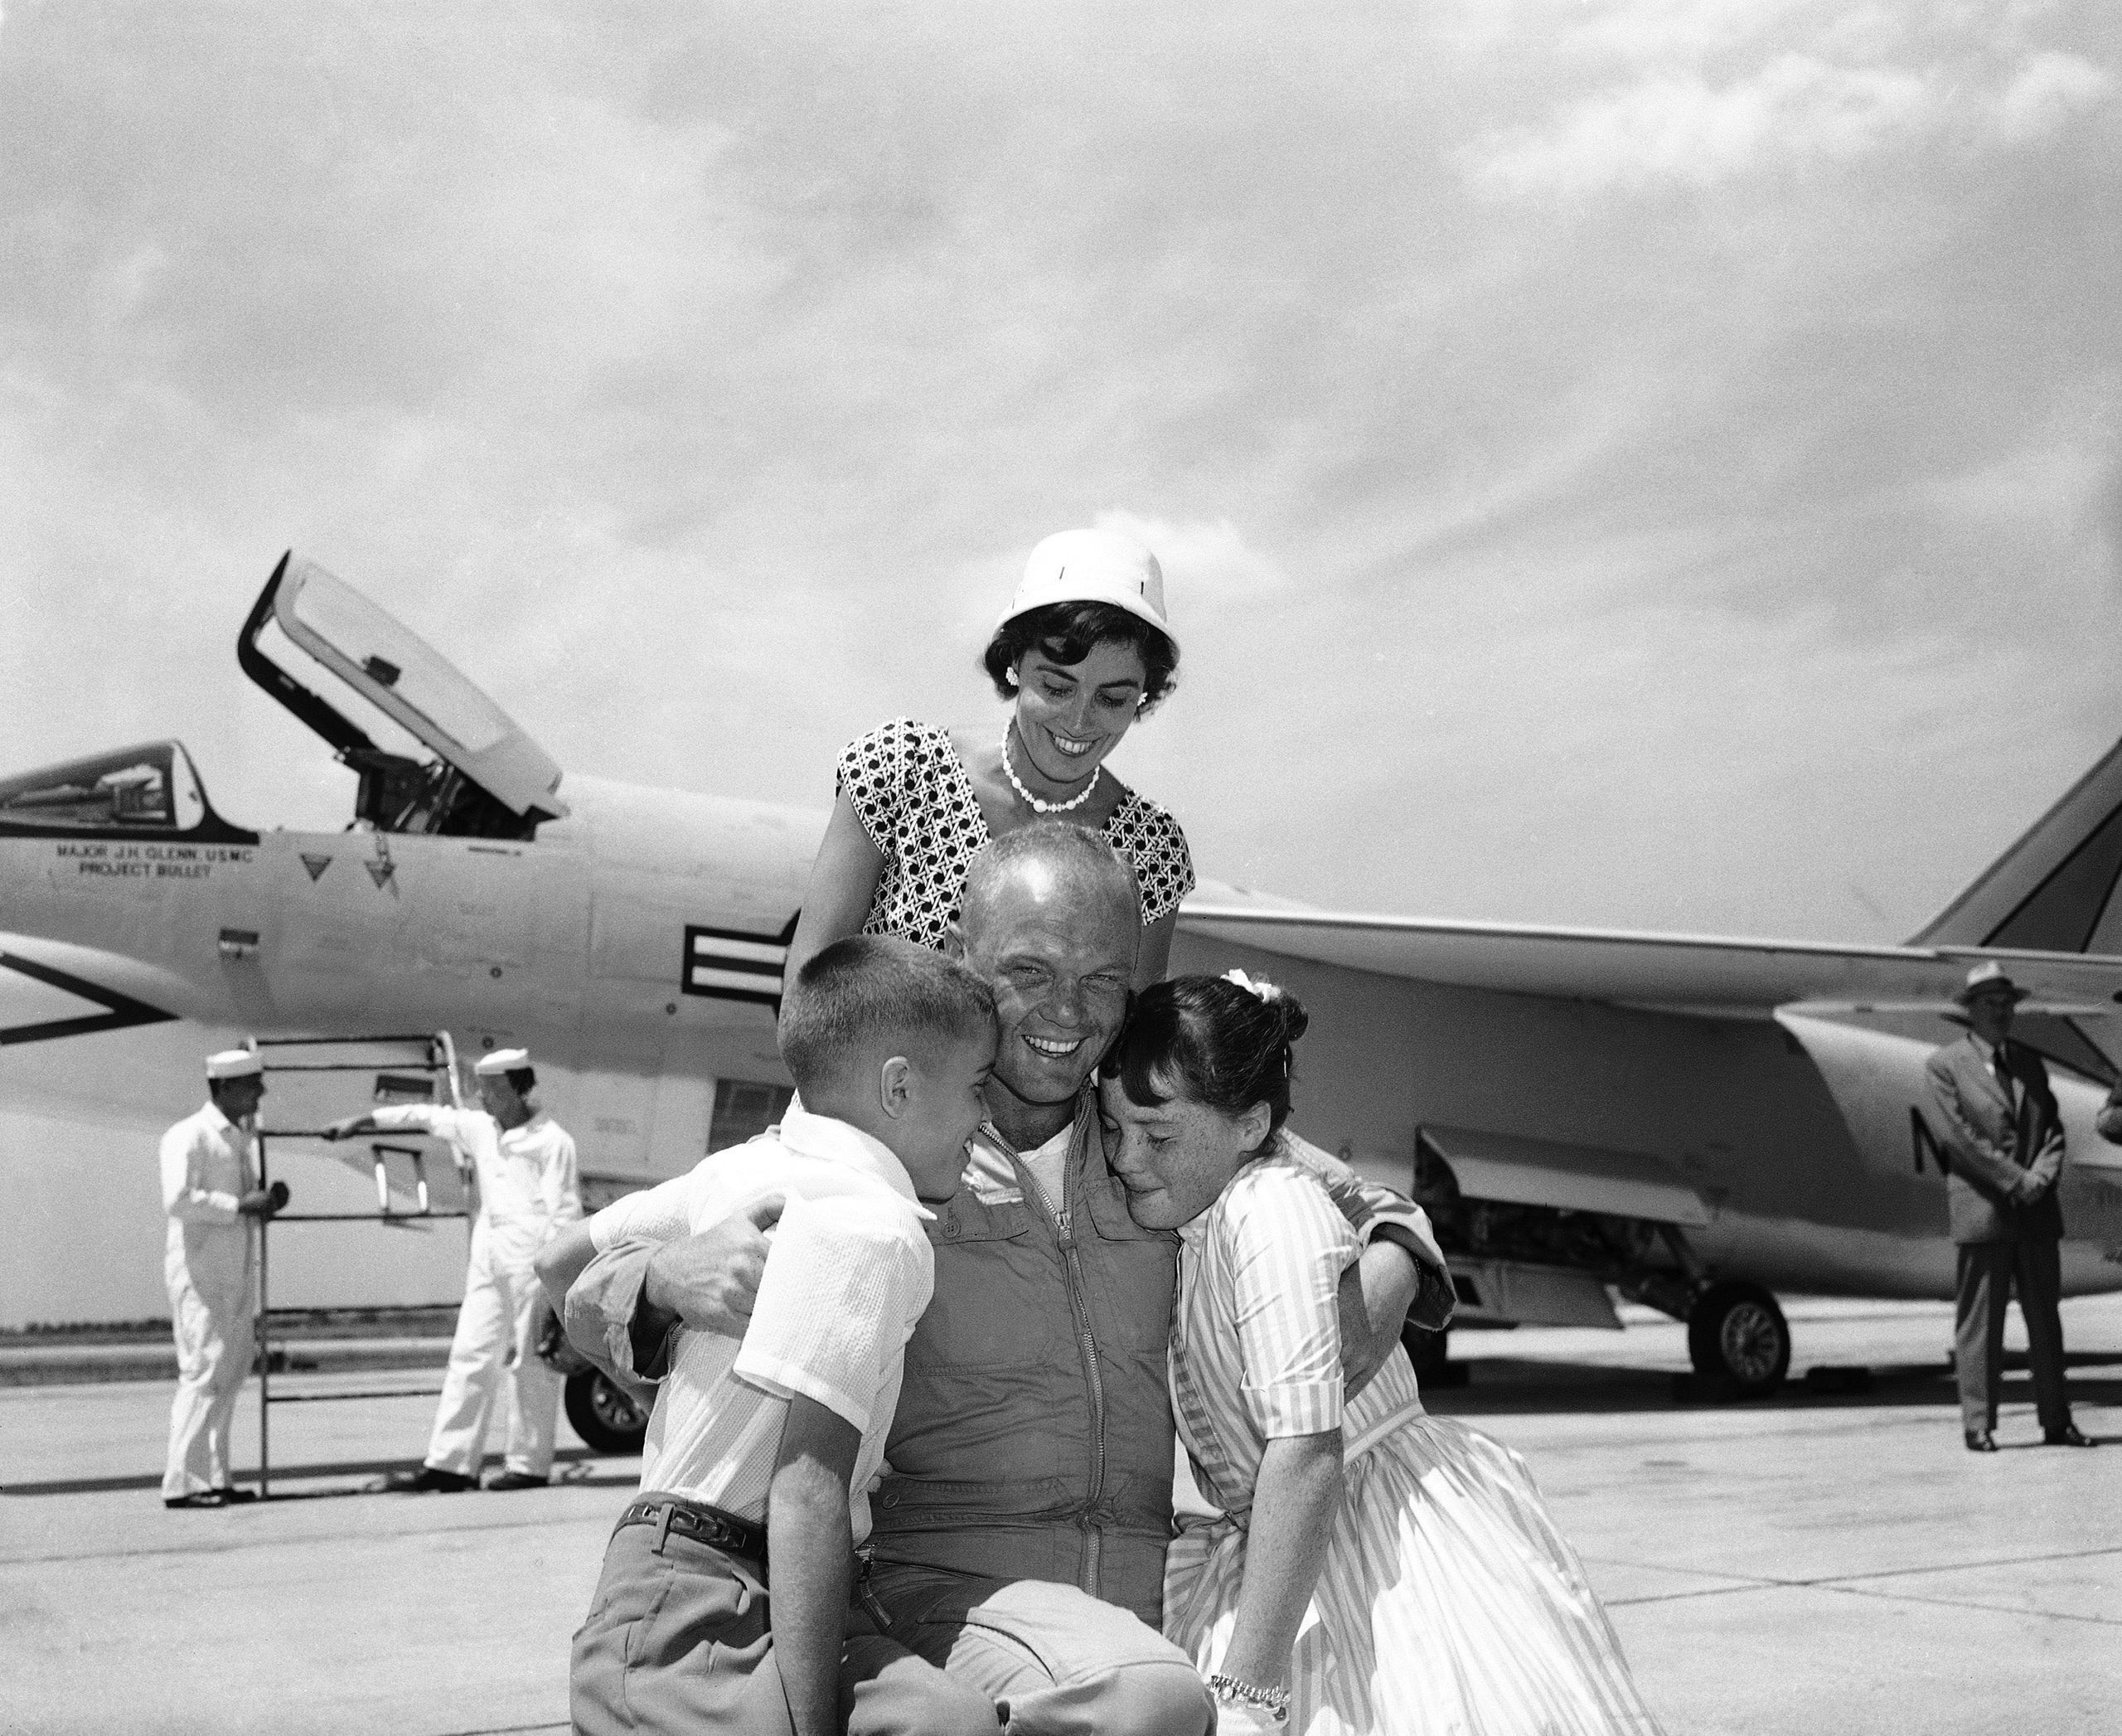 <b>Family Reunion</b> Glenn, greeted here by his wife Anne and his children Dave and Lyn, had just completed a flight from California to New York in 3 hr., 23 min., 8.4 sec., beating the previous record by more than 21 minutes. The date was July 16, 1957. No American had yet flown in space; 12 years later to the day, Apollo 11 would lift off for the first lunar landing.